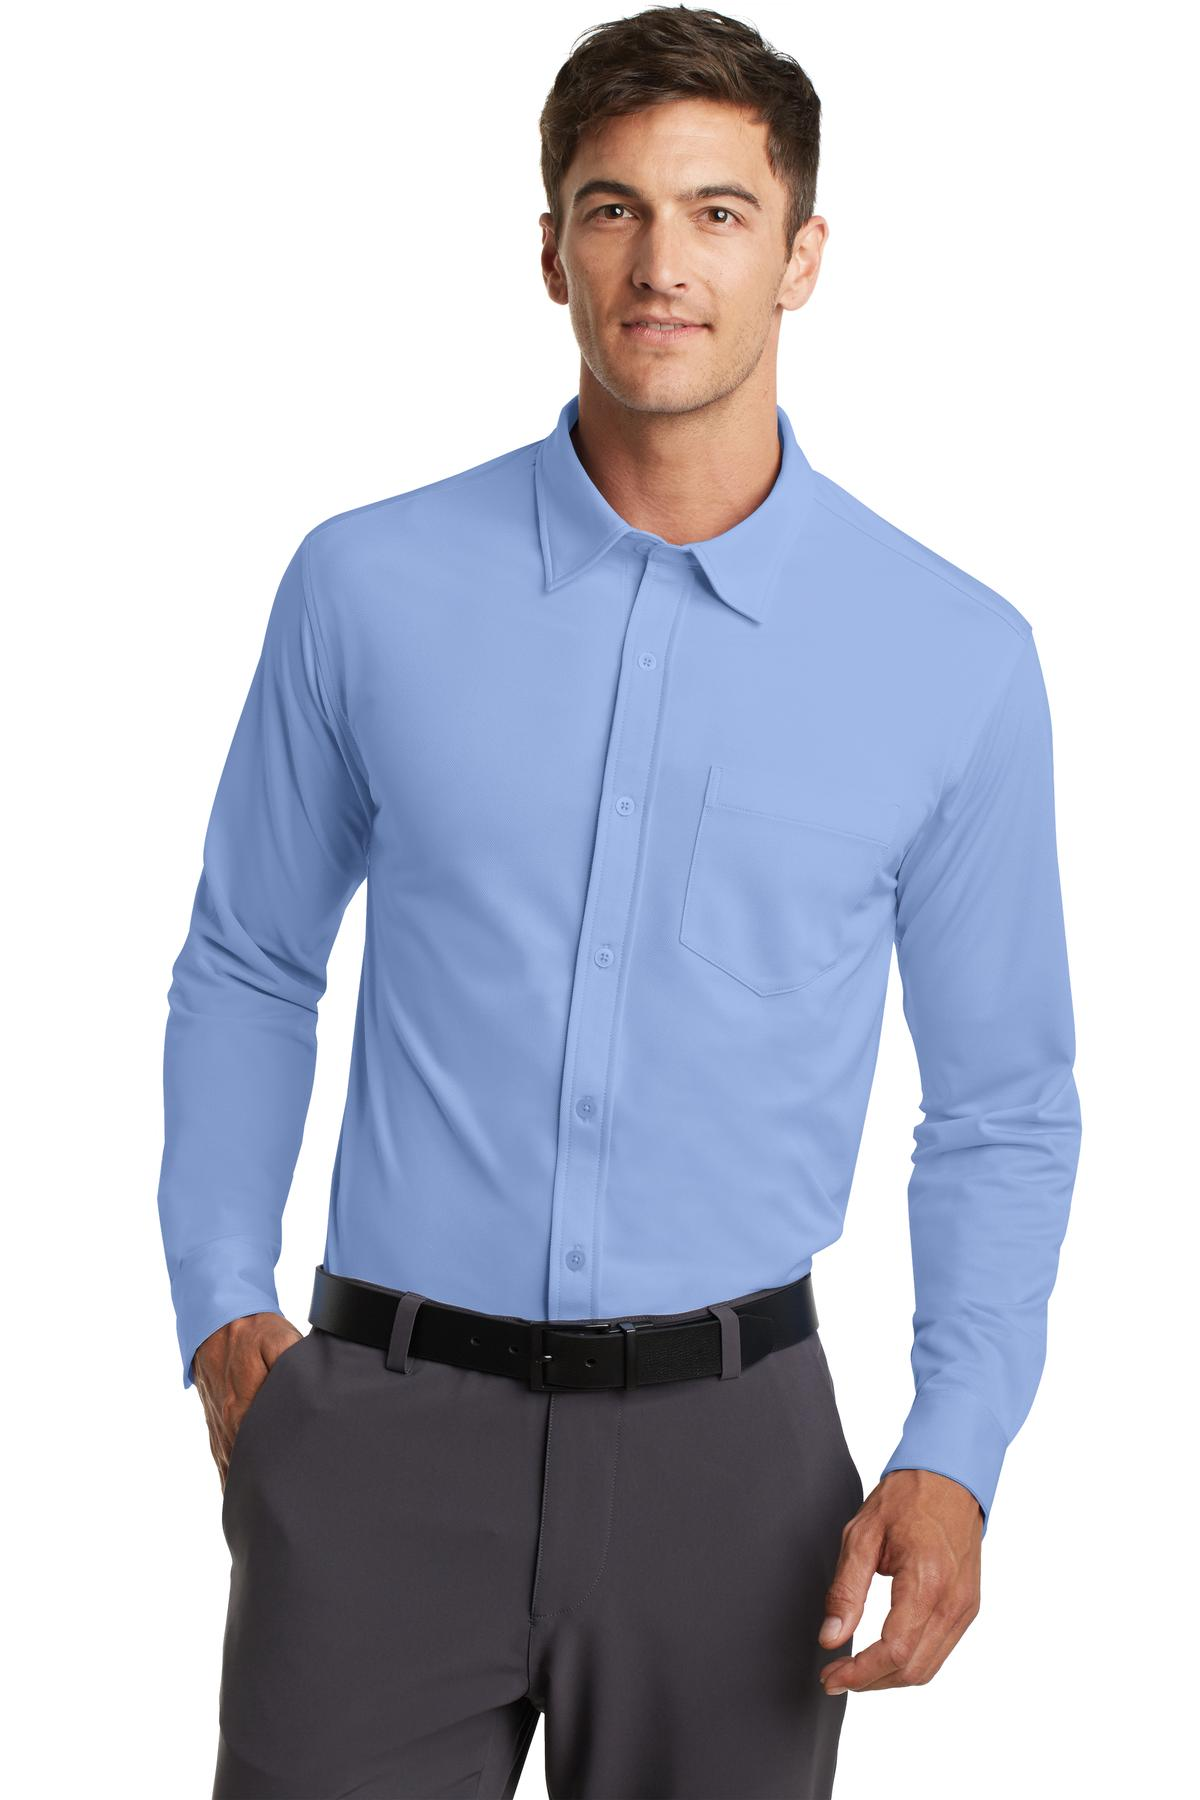 Find great deals on eBay for mens button down shirts. Shop with confidence.